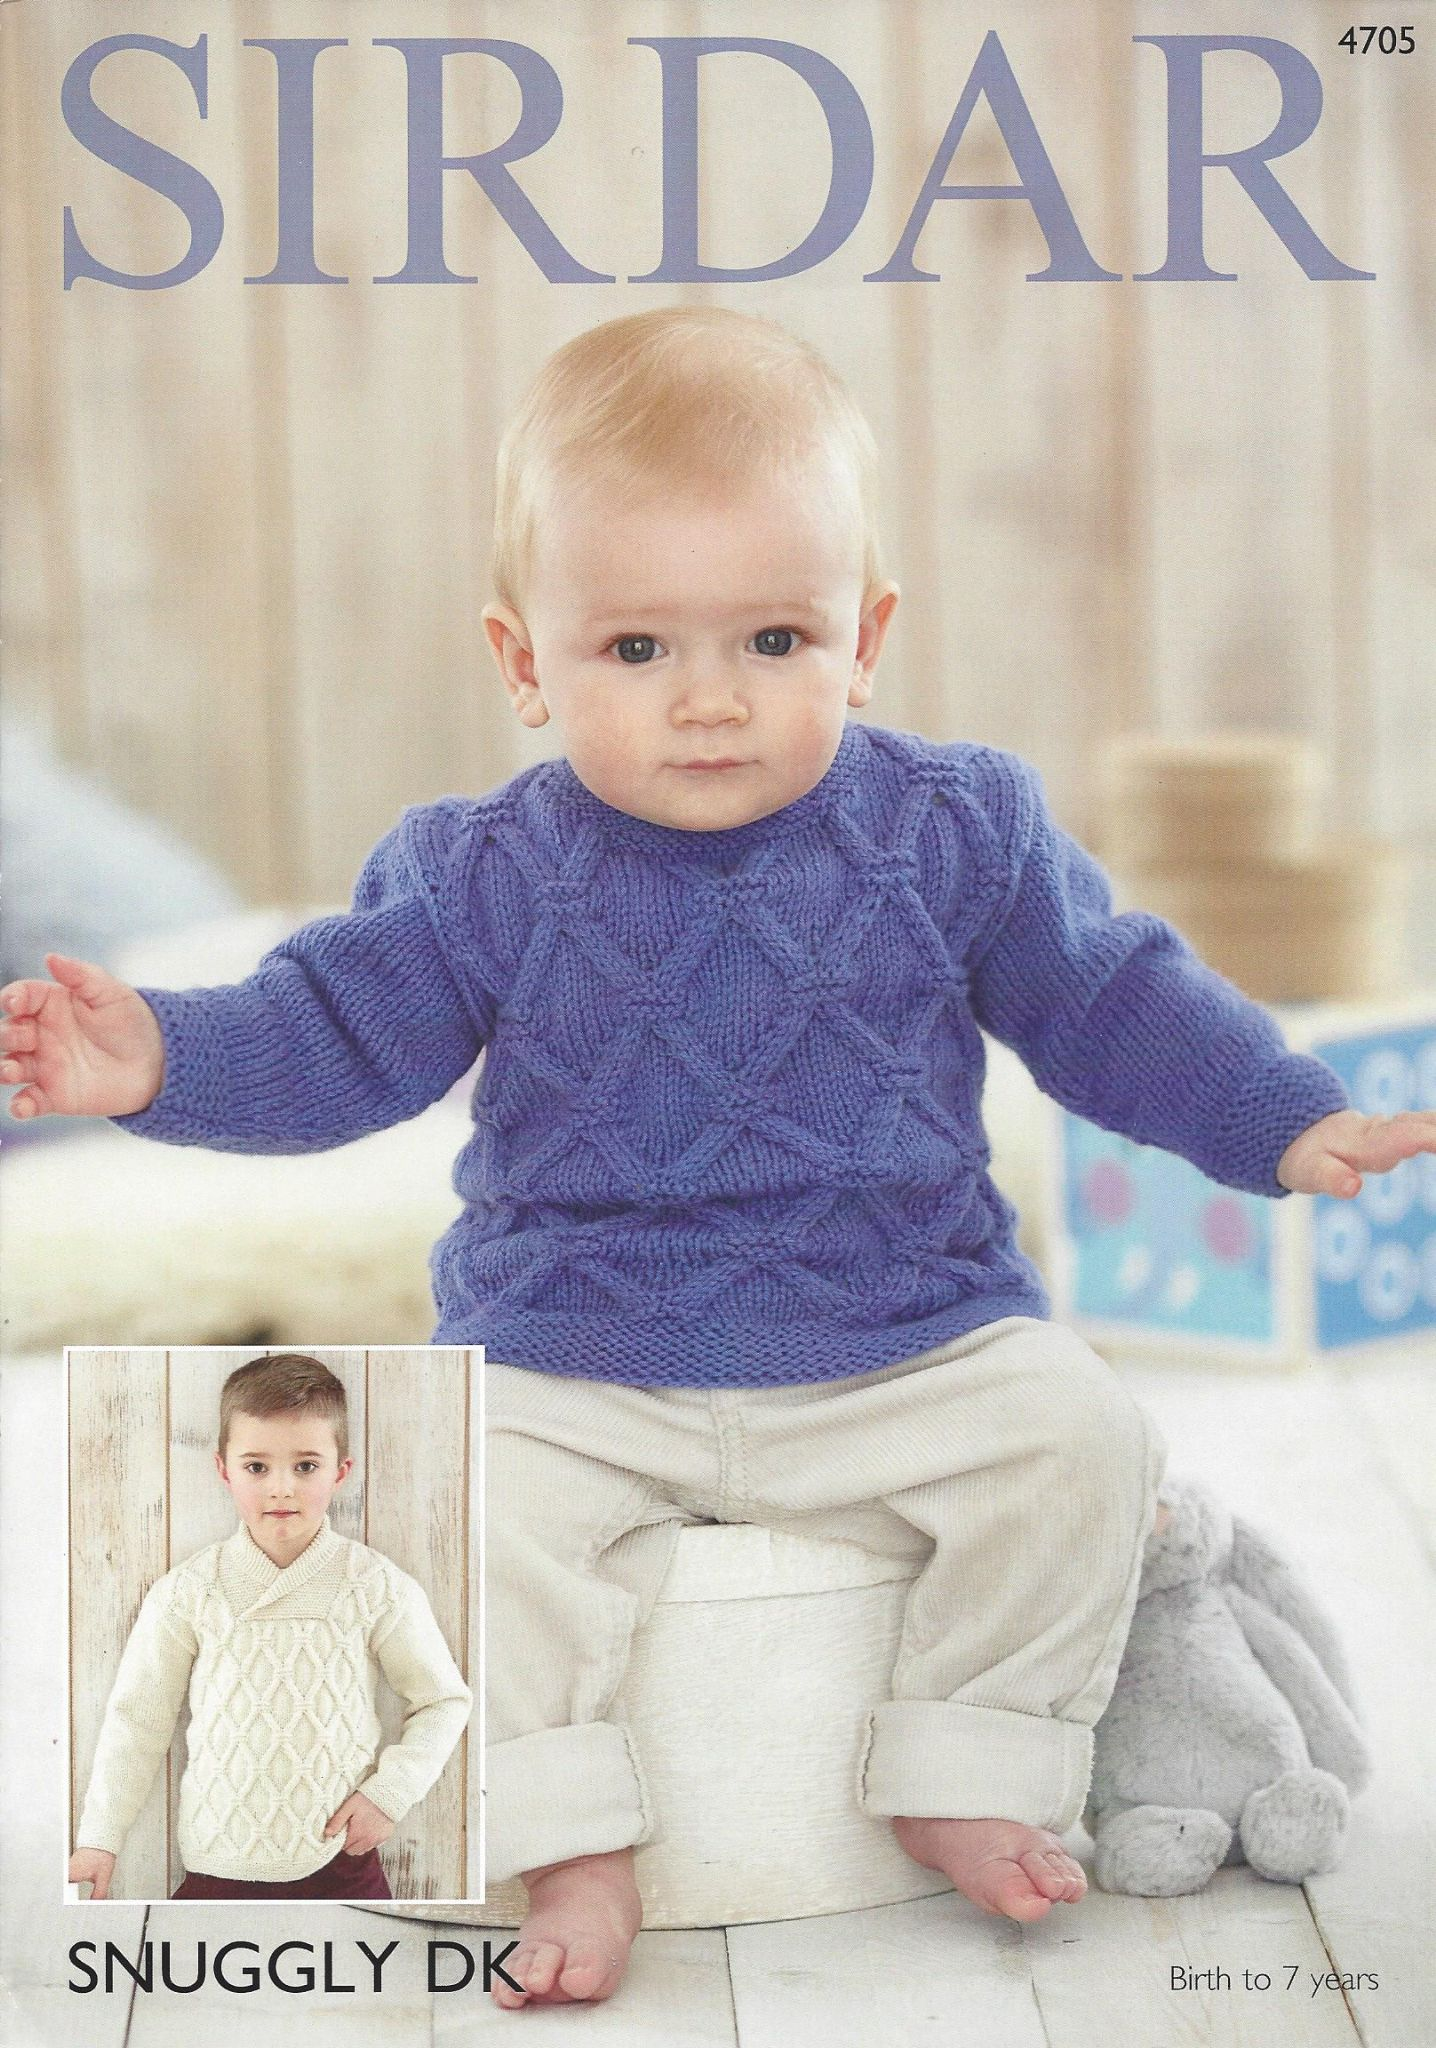 Sirdar Snuggly DK - 4705 Boy s Sweaters Knitting Pattern